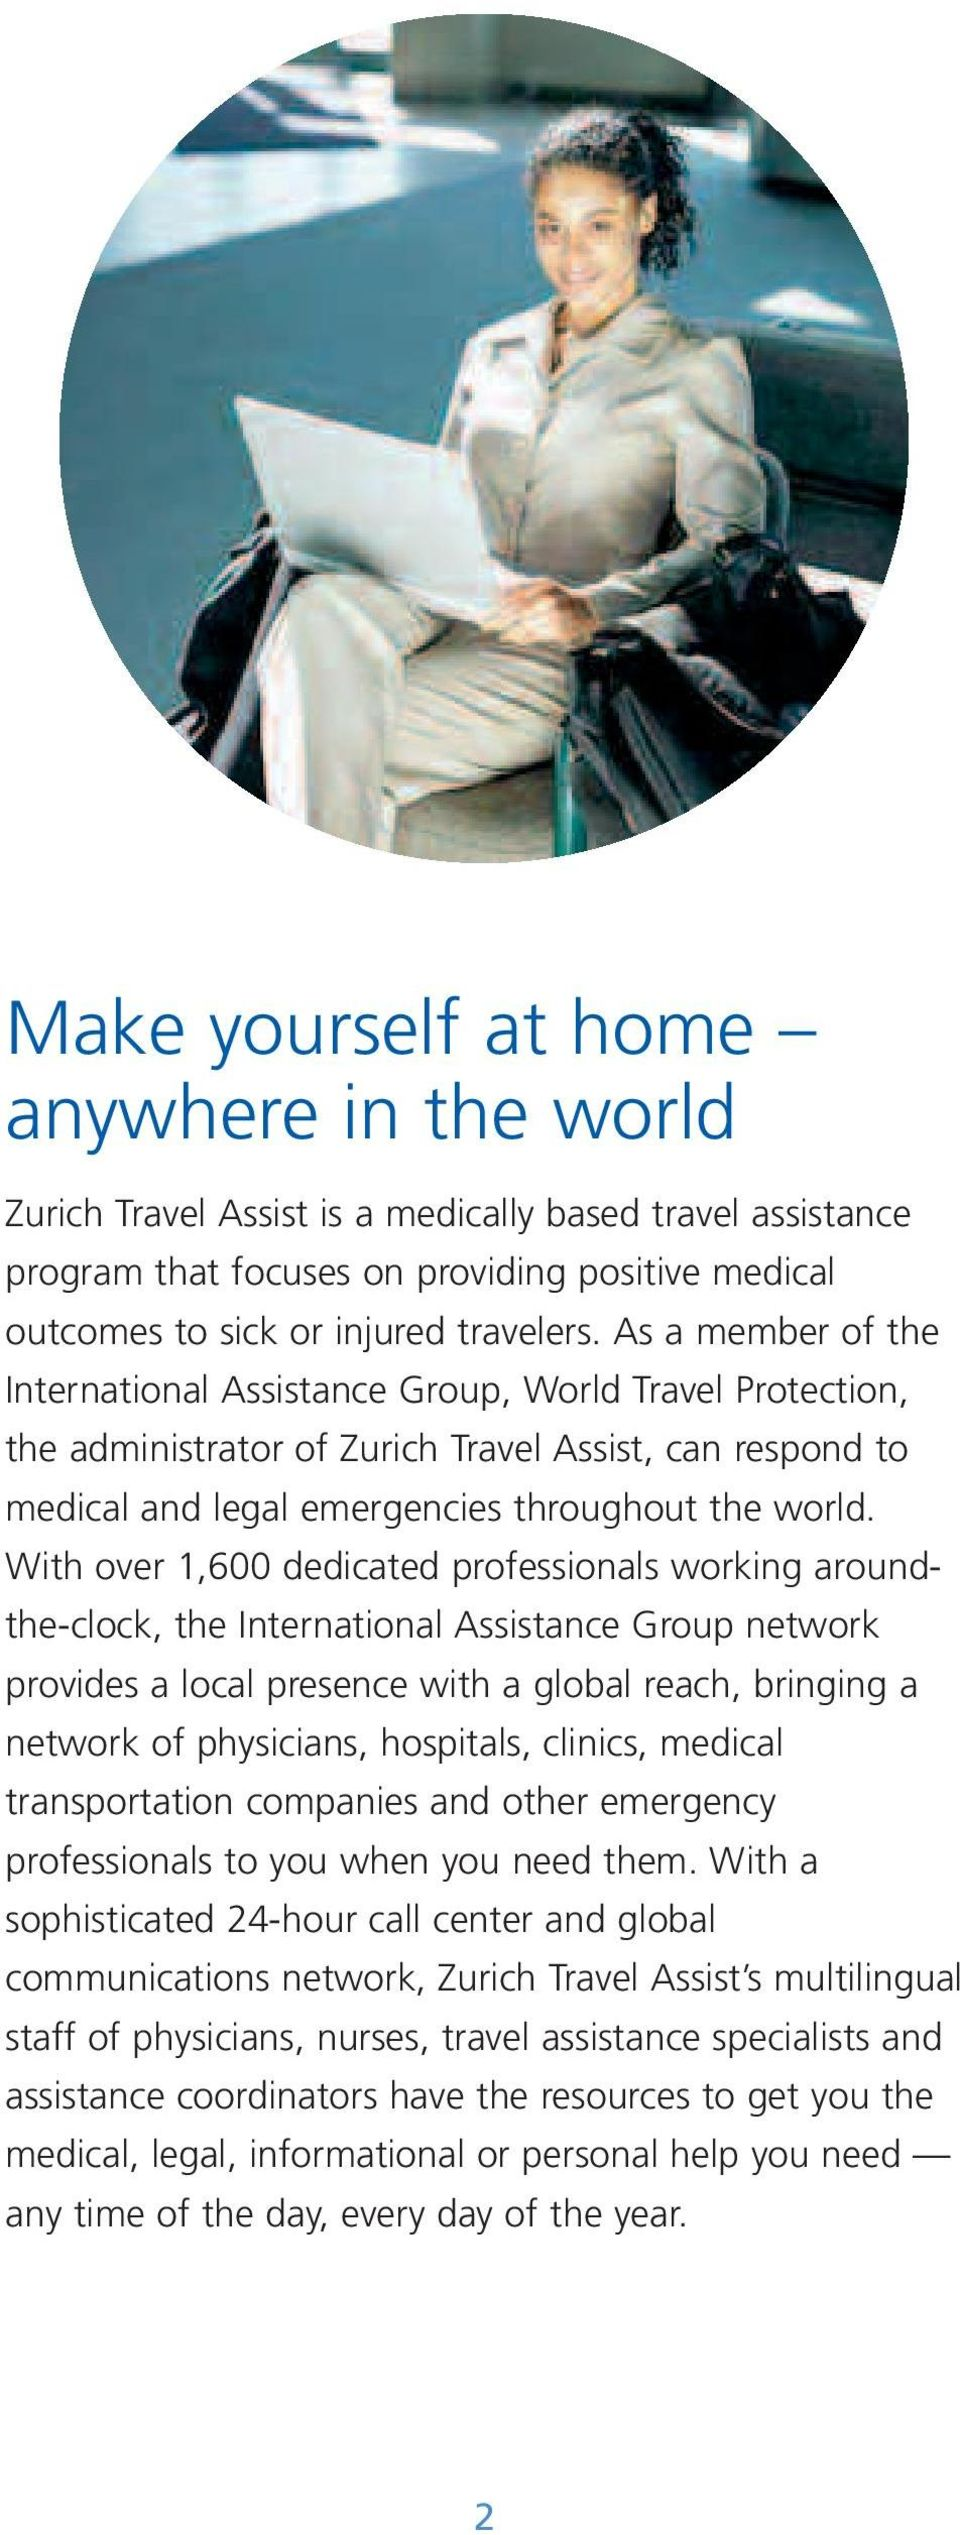 With over 1,600 dedicated professionals working aroundthe-clock, the International Assistance Group network provides a local presence with a global reach, bringing a network of physicians, hospitals,